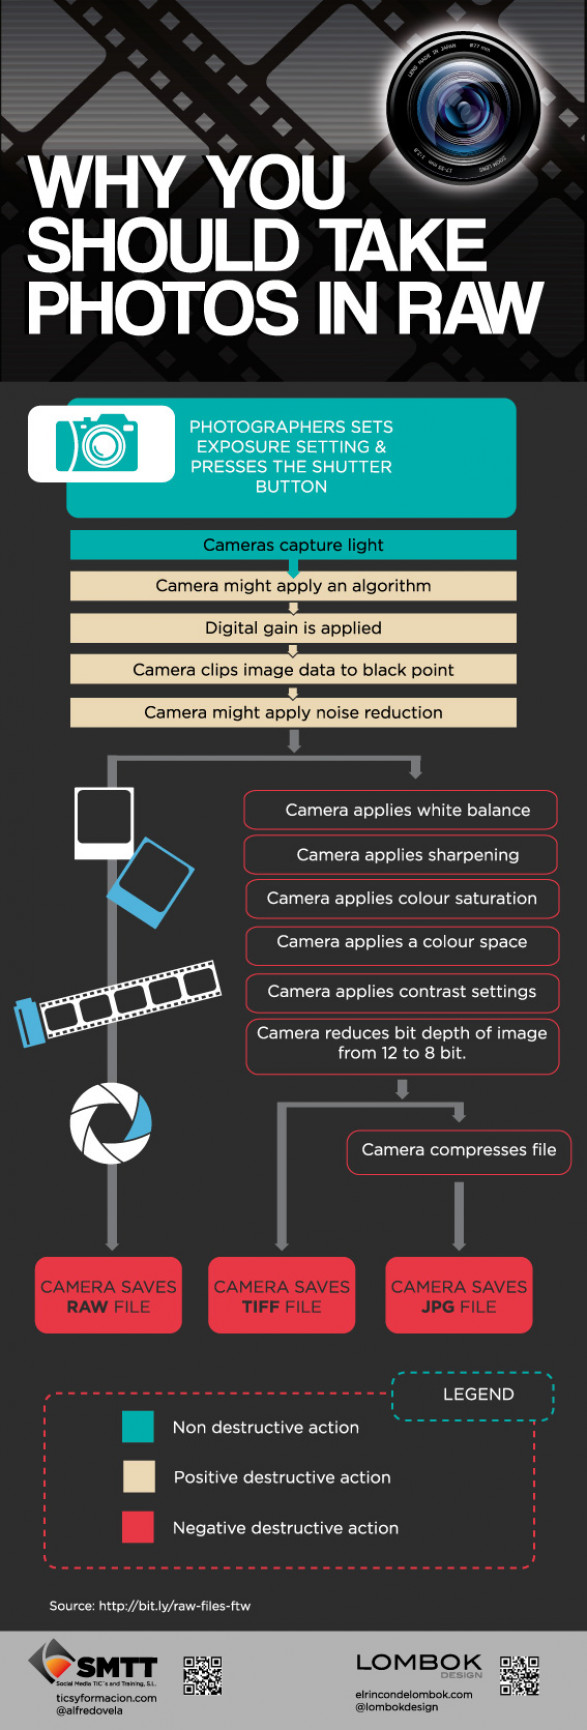 Why you should take Photos in RAW? (Infographic)   why you should take photos in raw 502914ec11552 w587